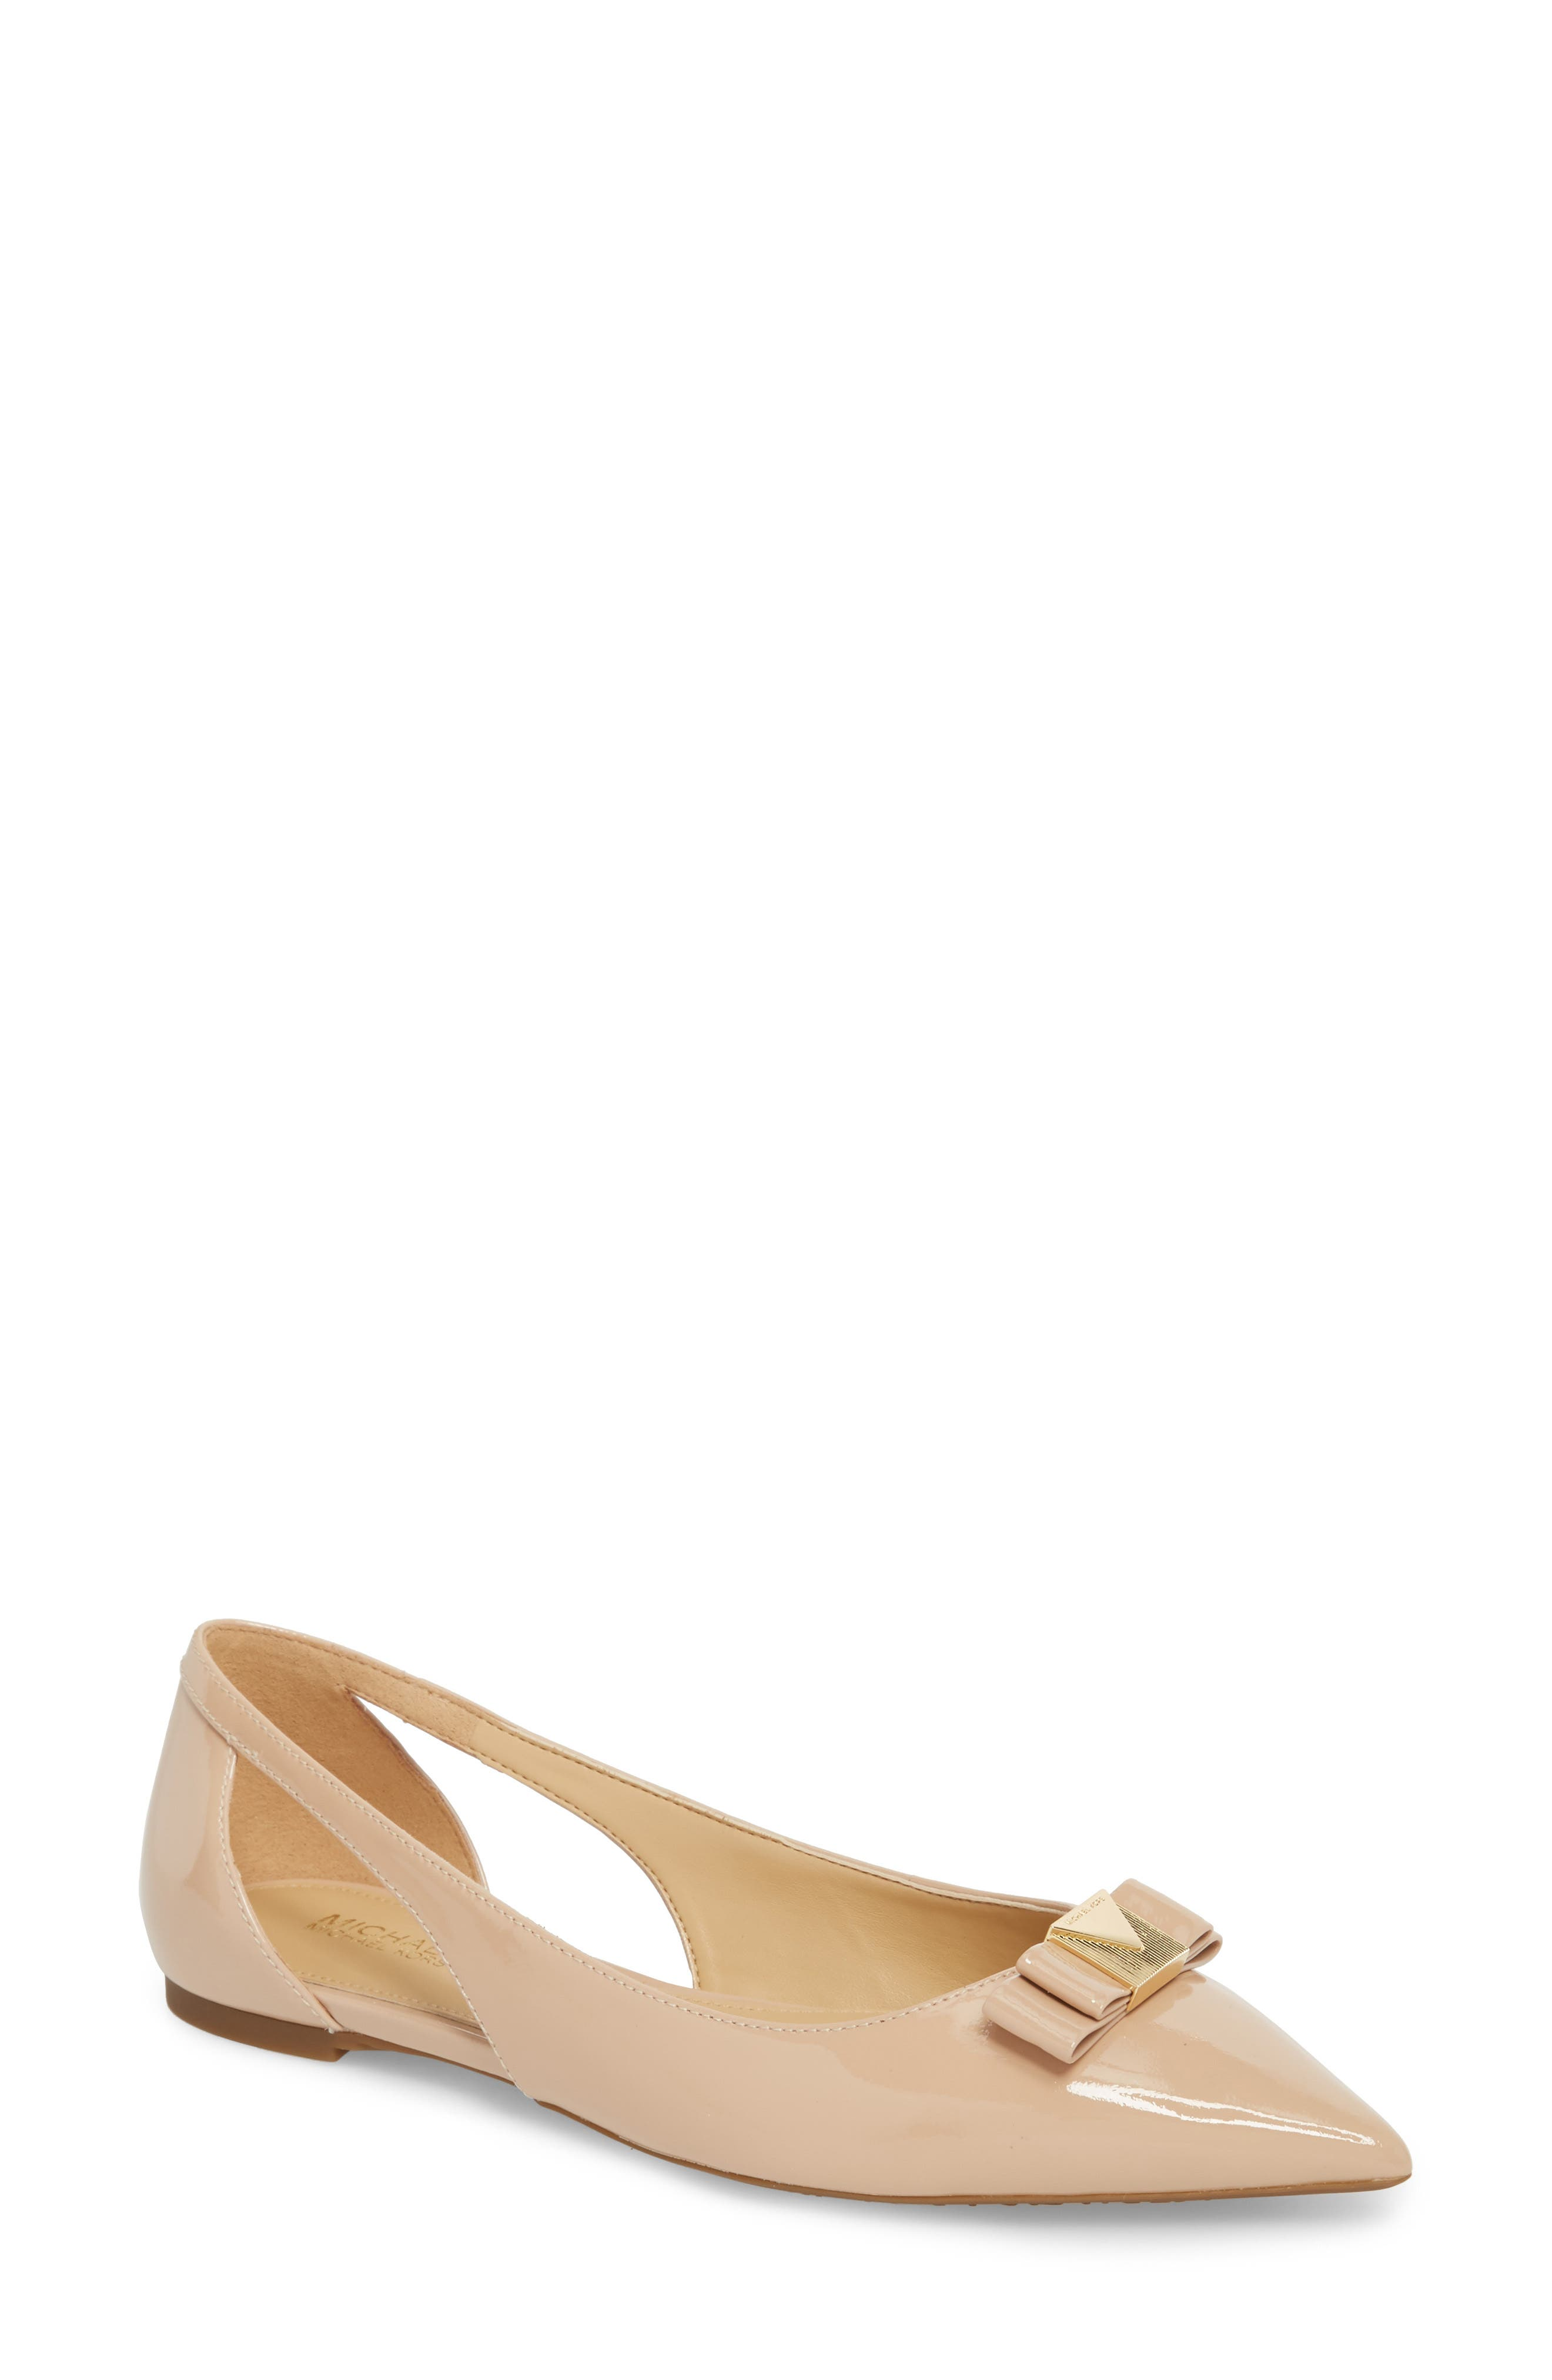 Carlson Cutout Flat,                         Main,                         color,